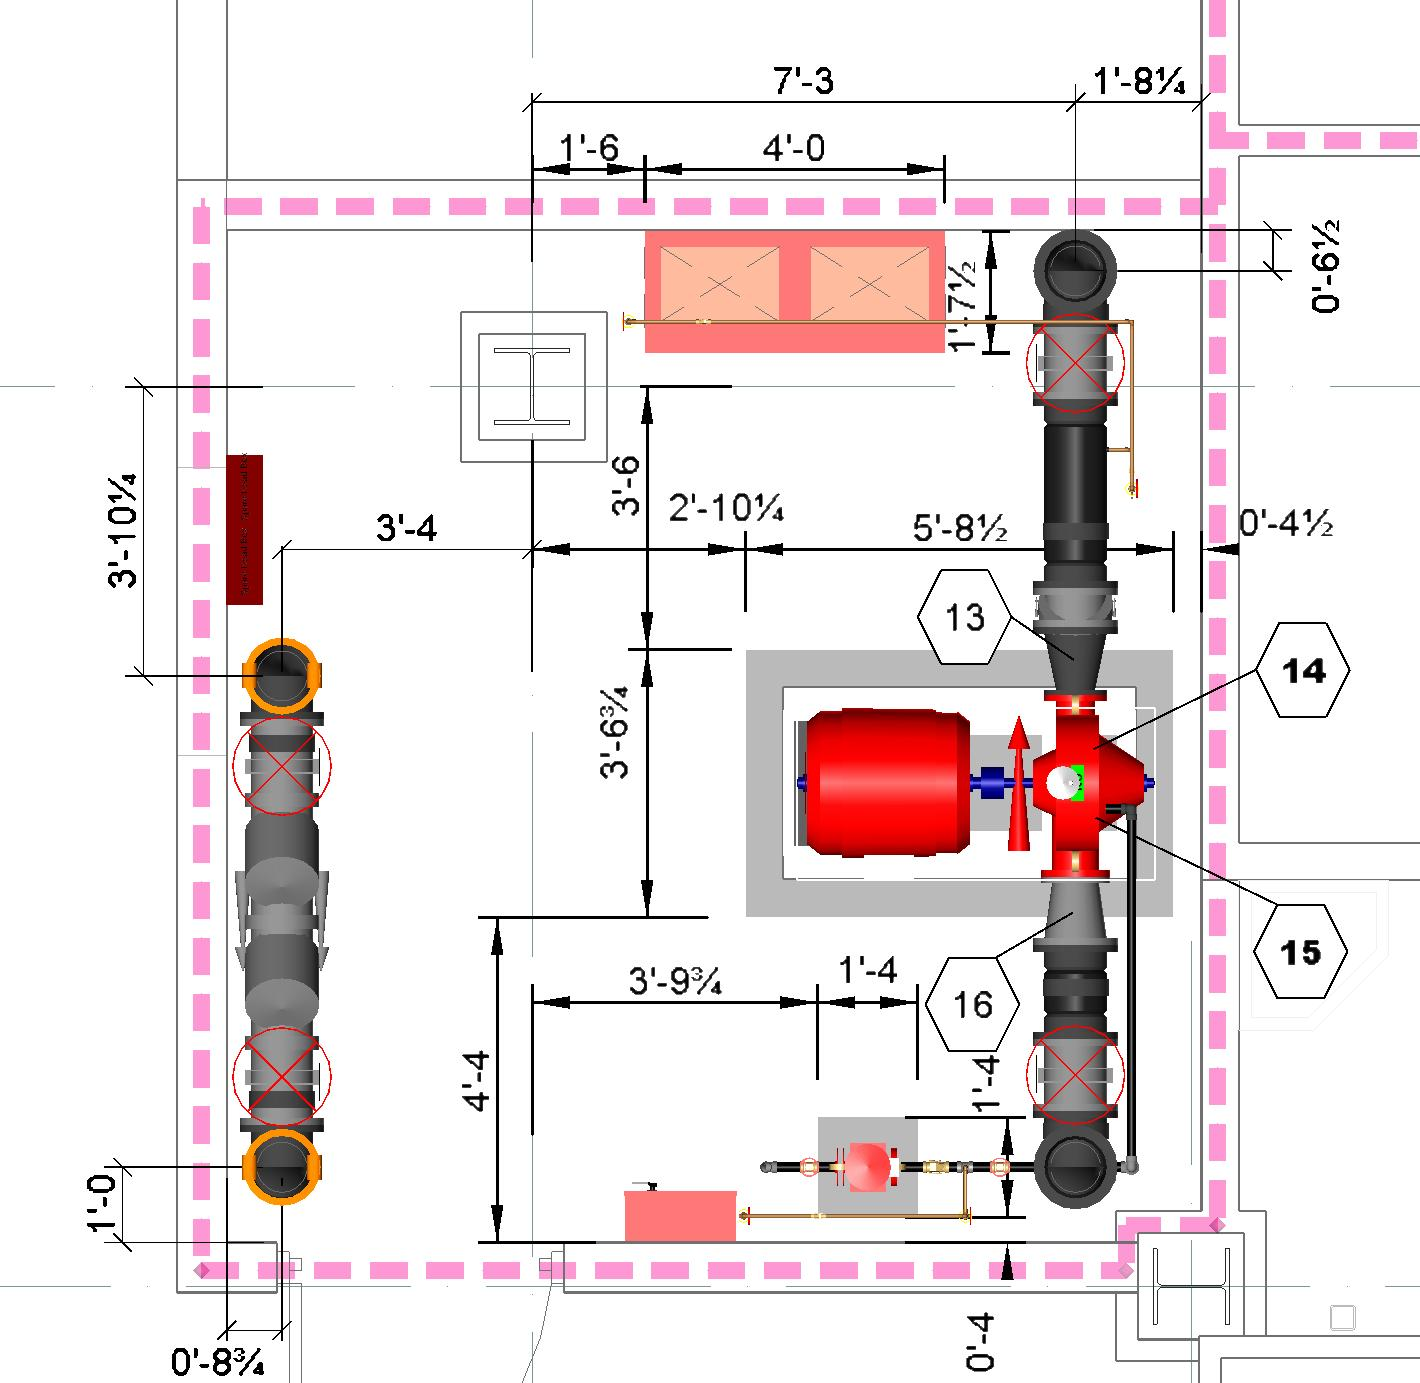 ansul wiring diagrams our design and estimating staff are experienced and  our design and estimating staff are experienced and